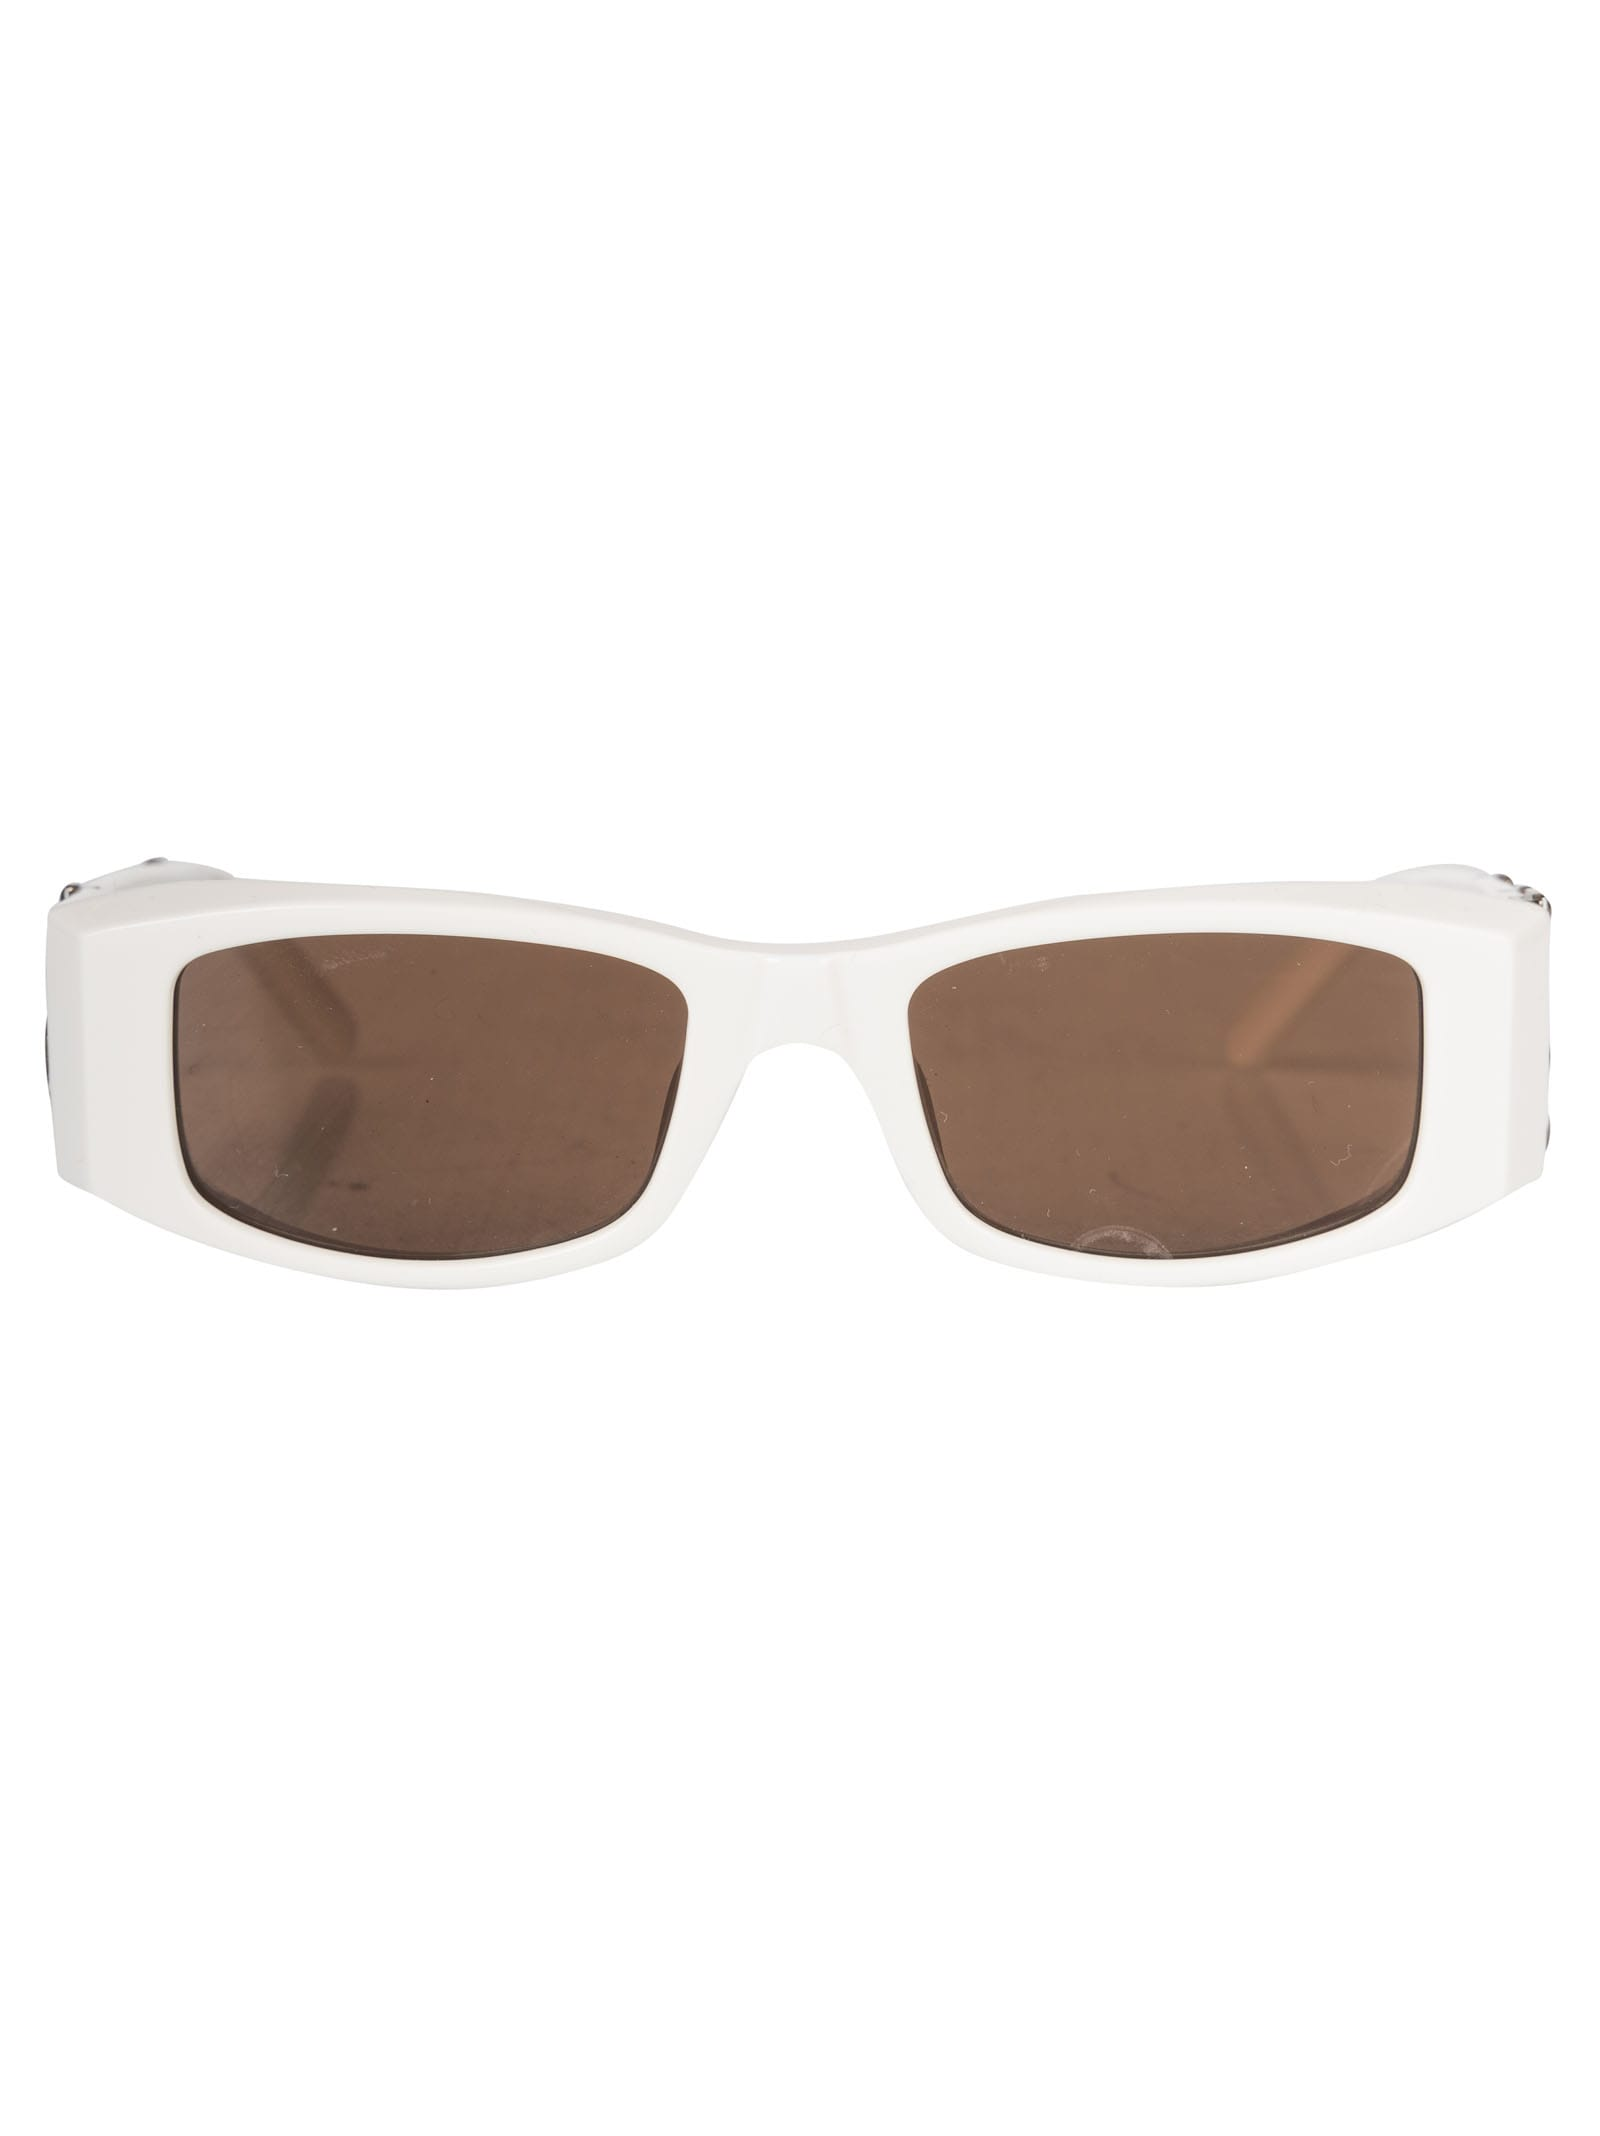 Palm Angels Pa01 Sunglasses In White/brown